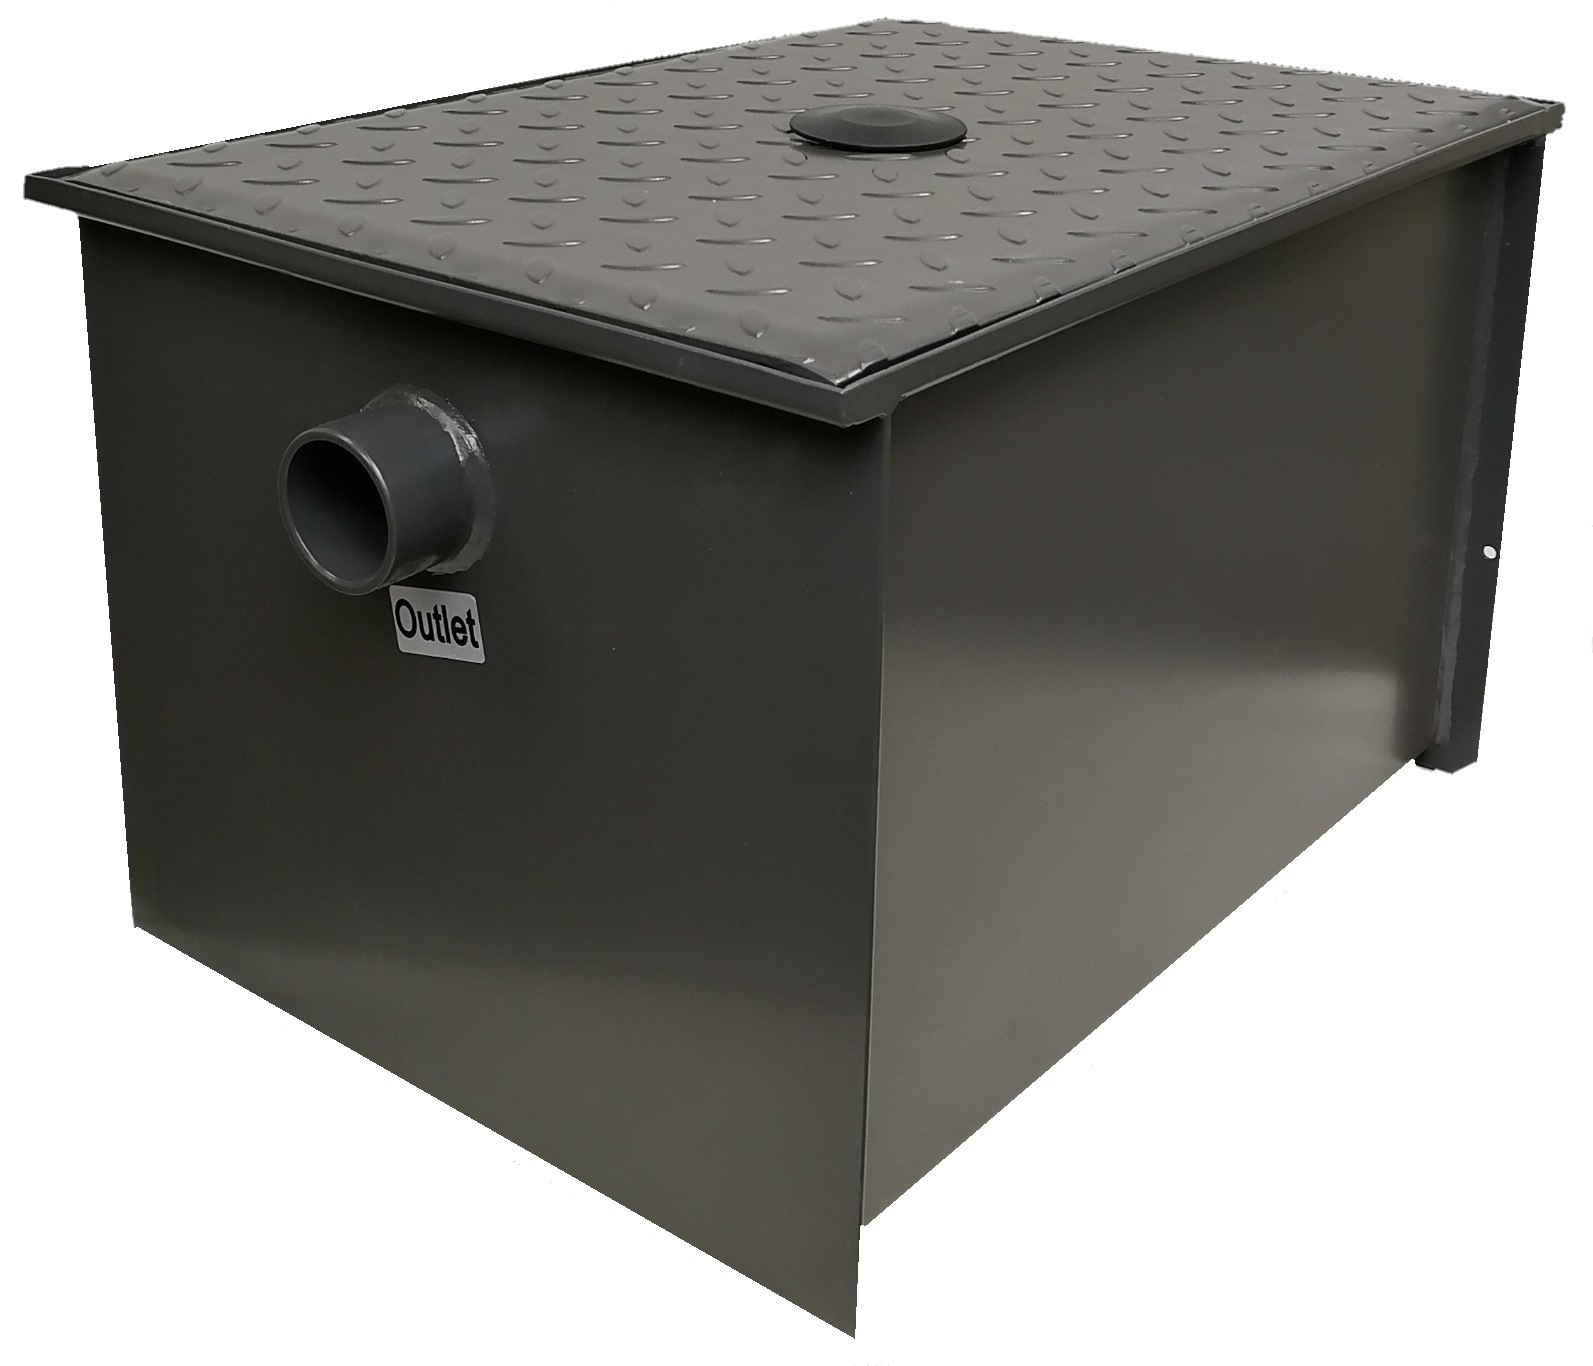 Ltr superior epoxy coated stainless steel grease trap